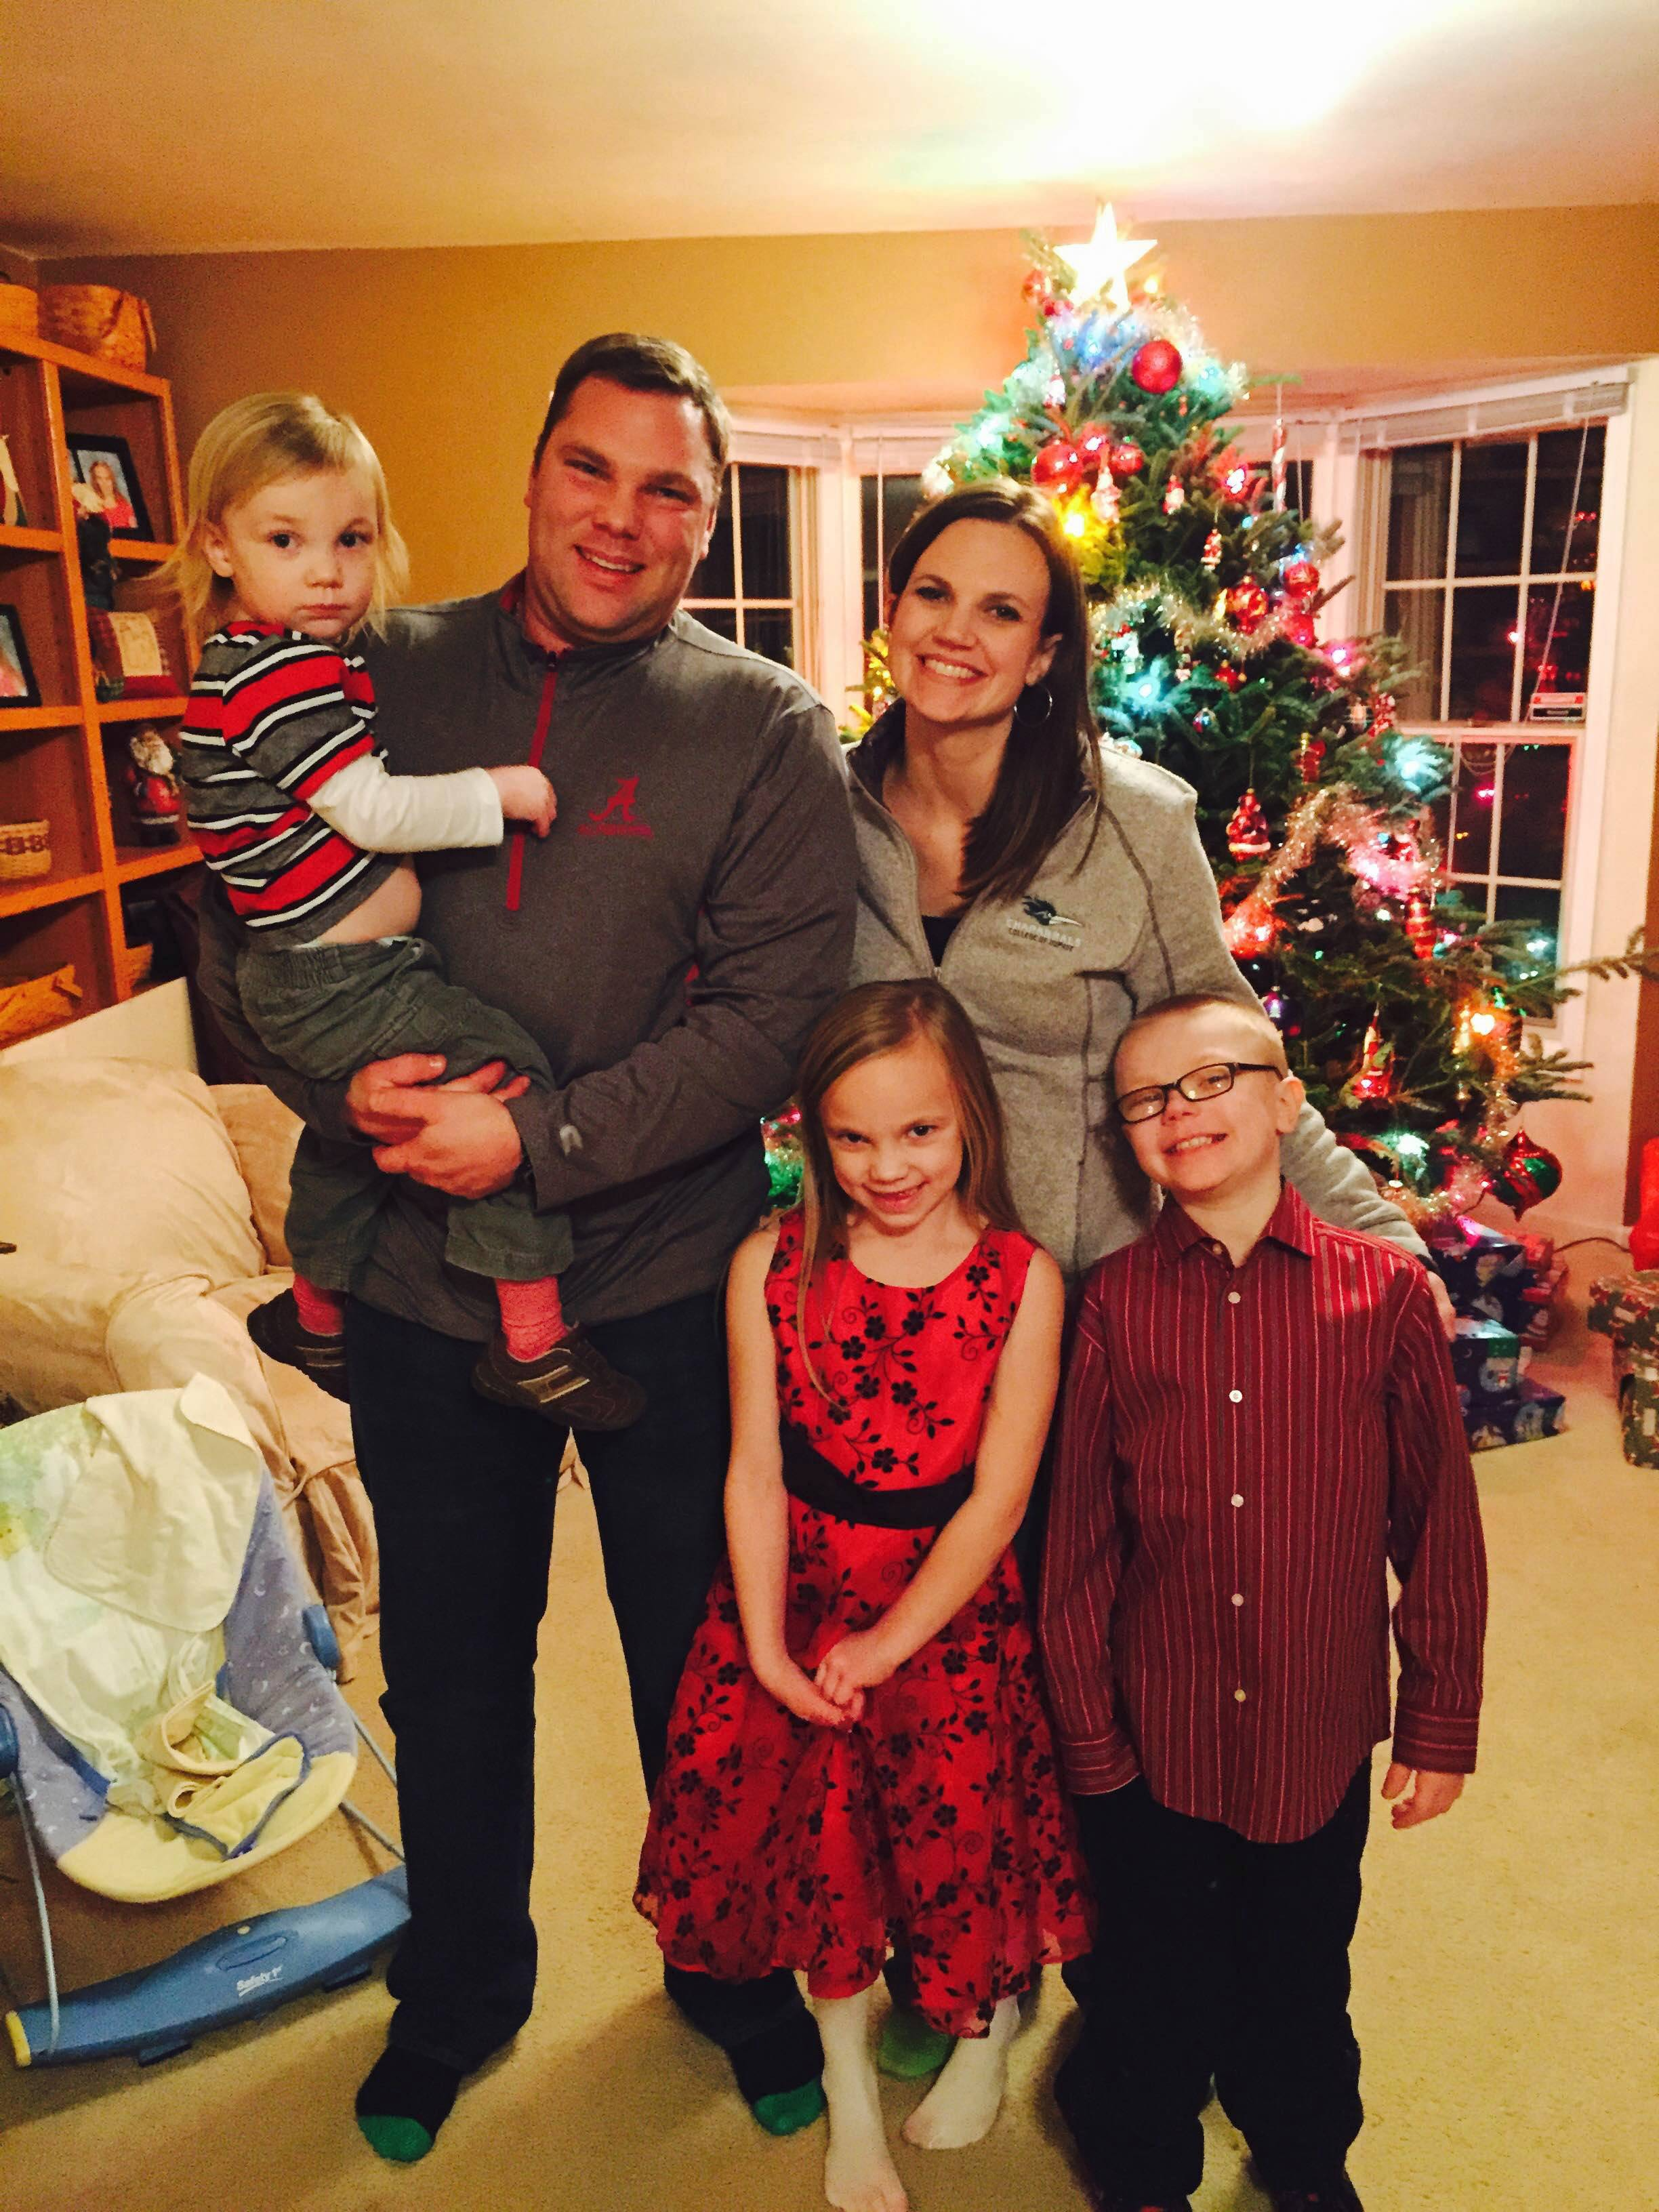 Owen Payton, right, celebrates the holidays with his family, parents Chris and Christina, and sister Juliet and brother Tredway.